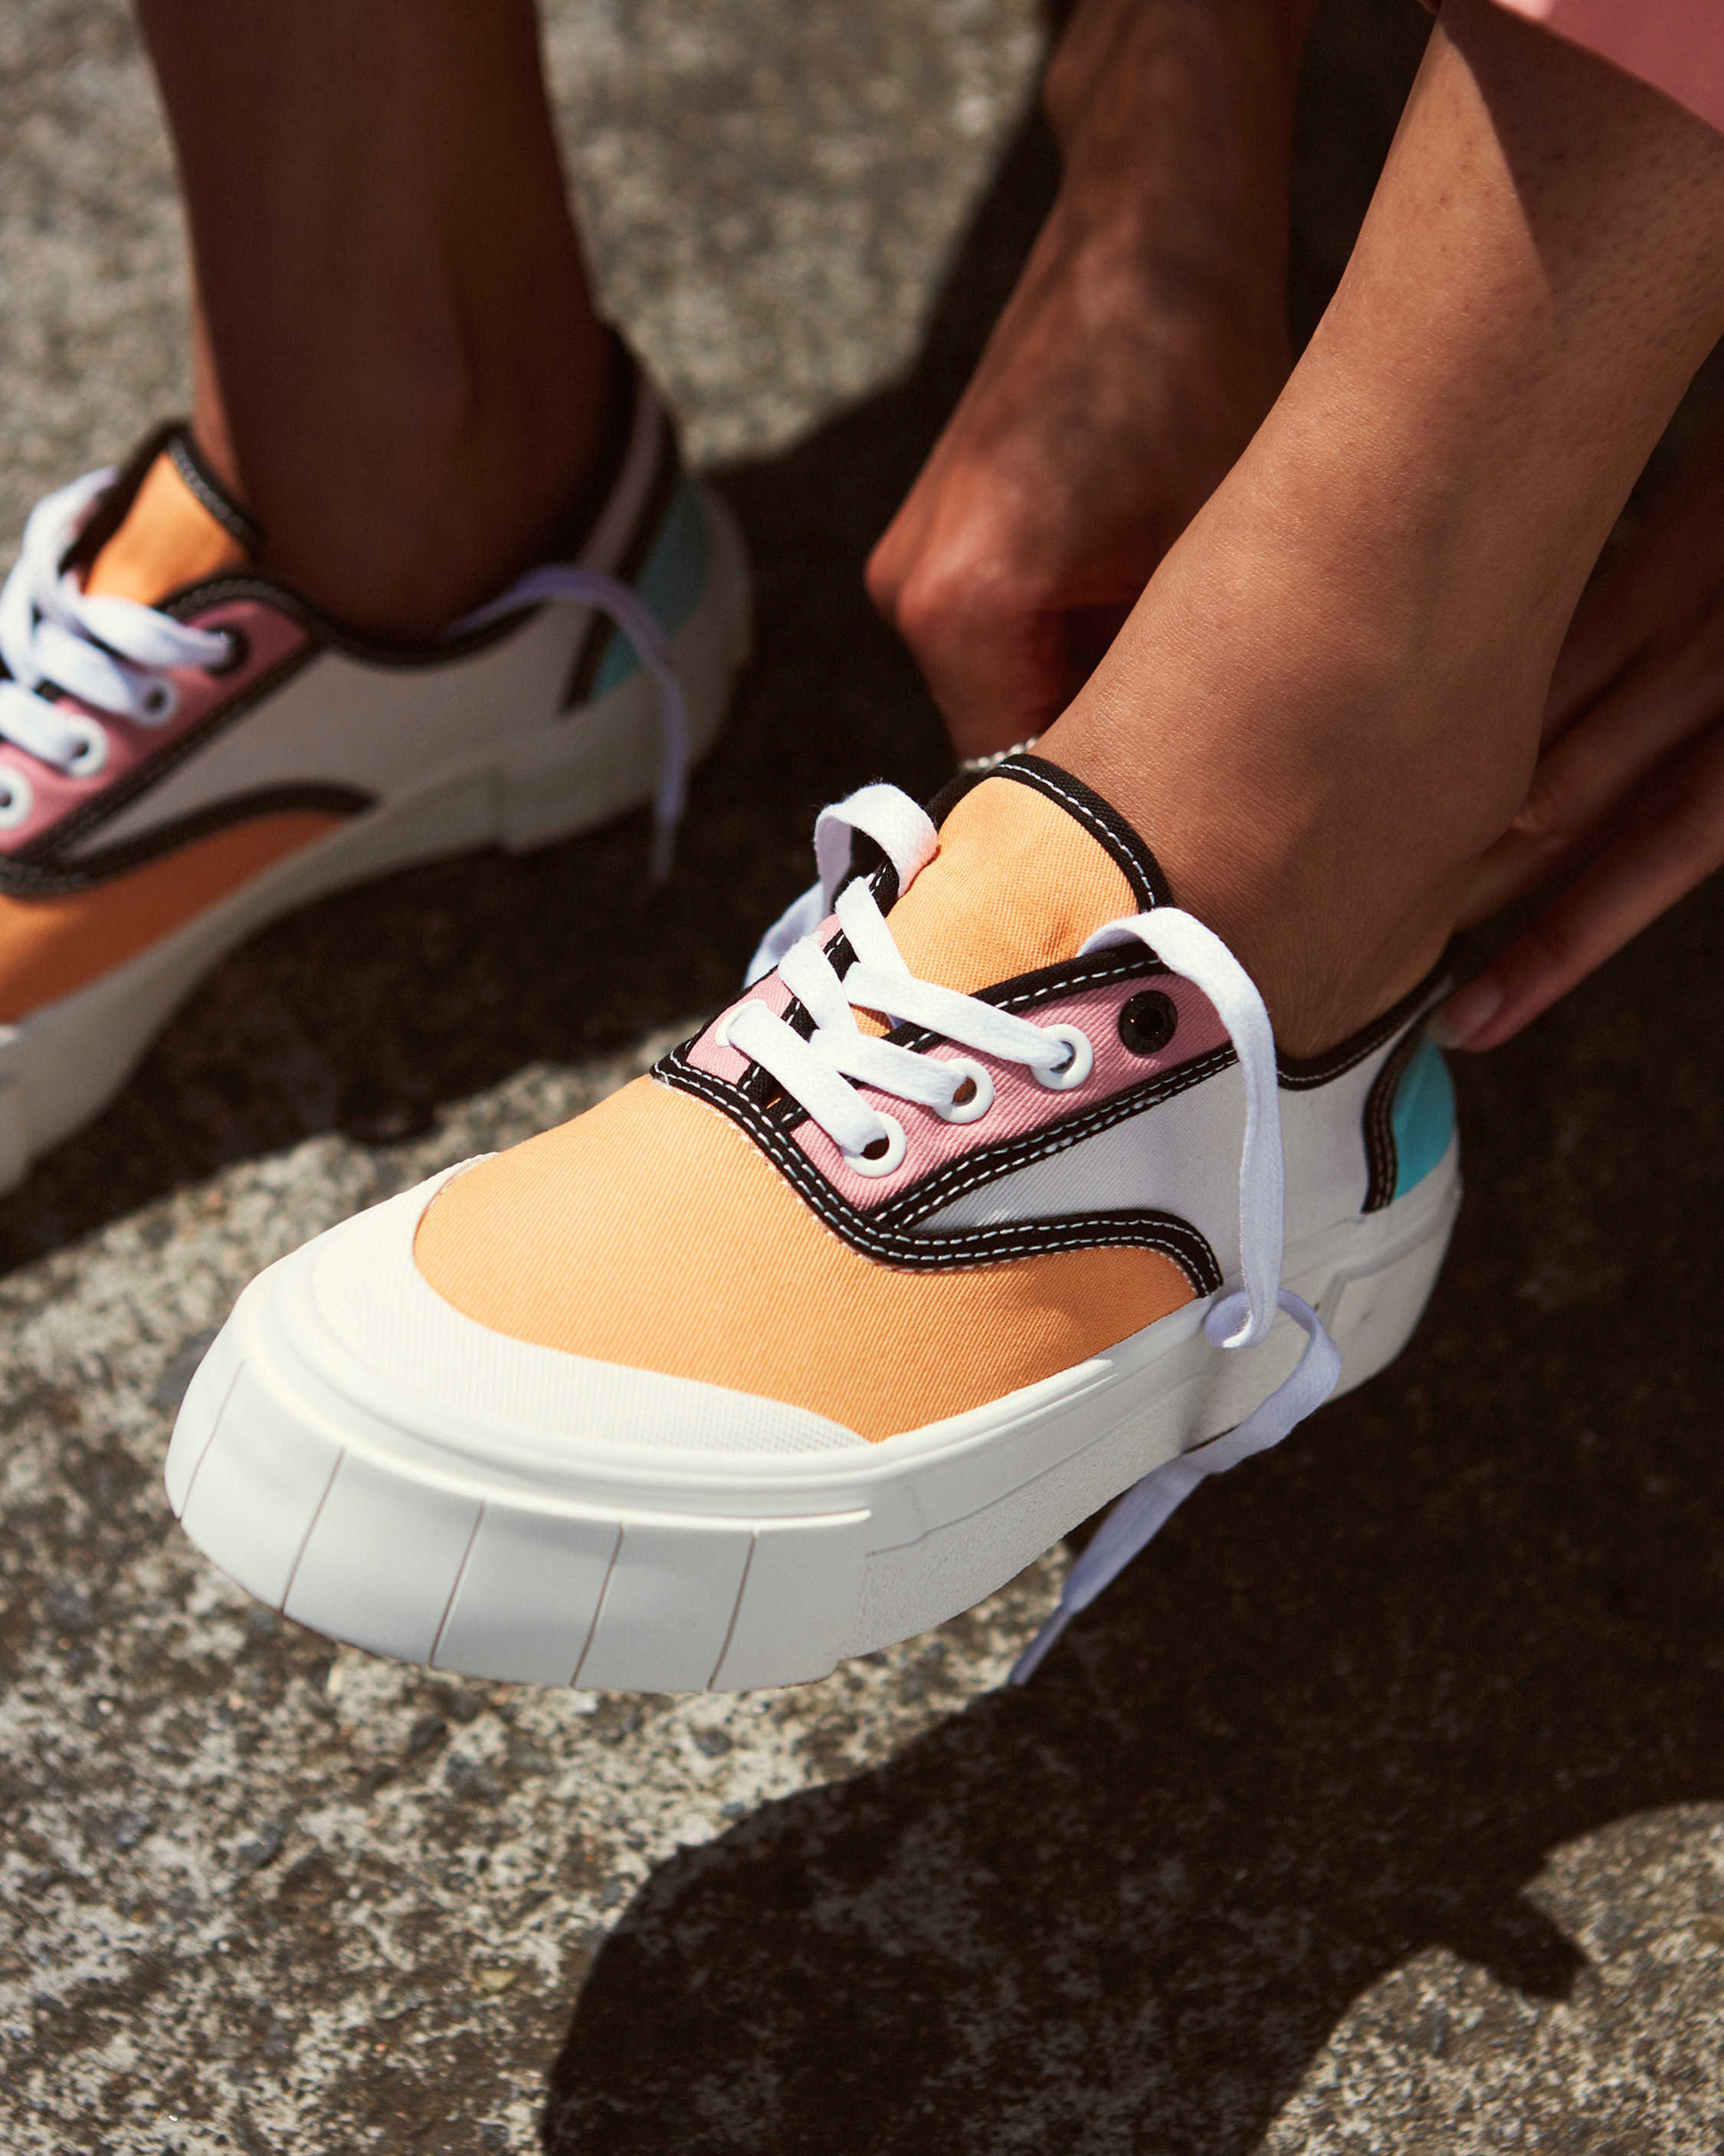 GOOD NEWS Babe 2 Low Sneakers 2